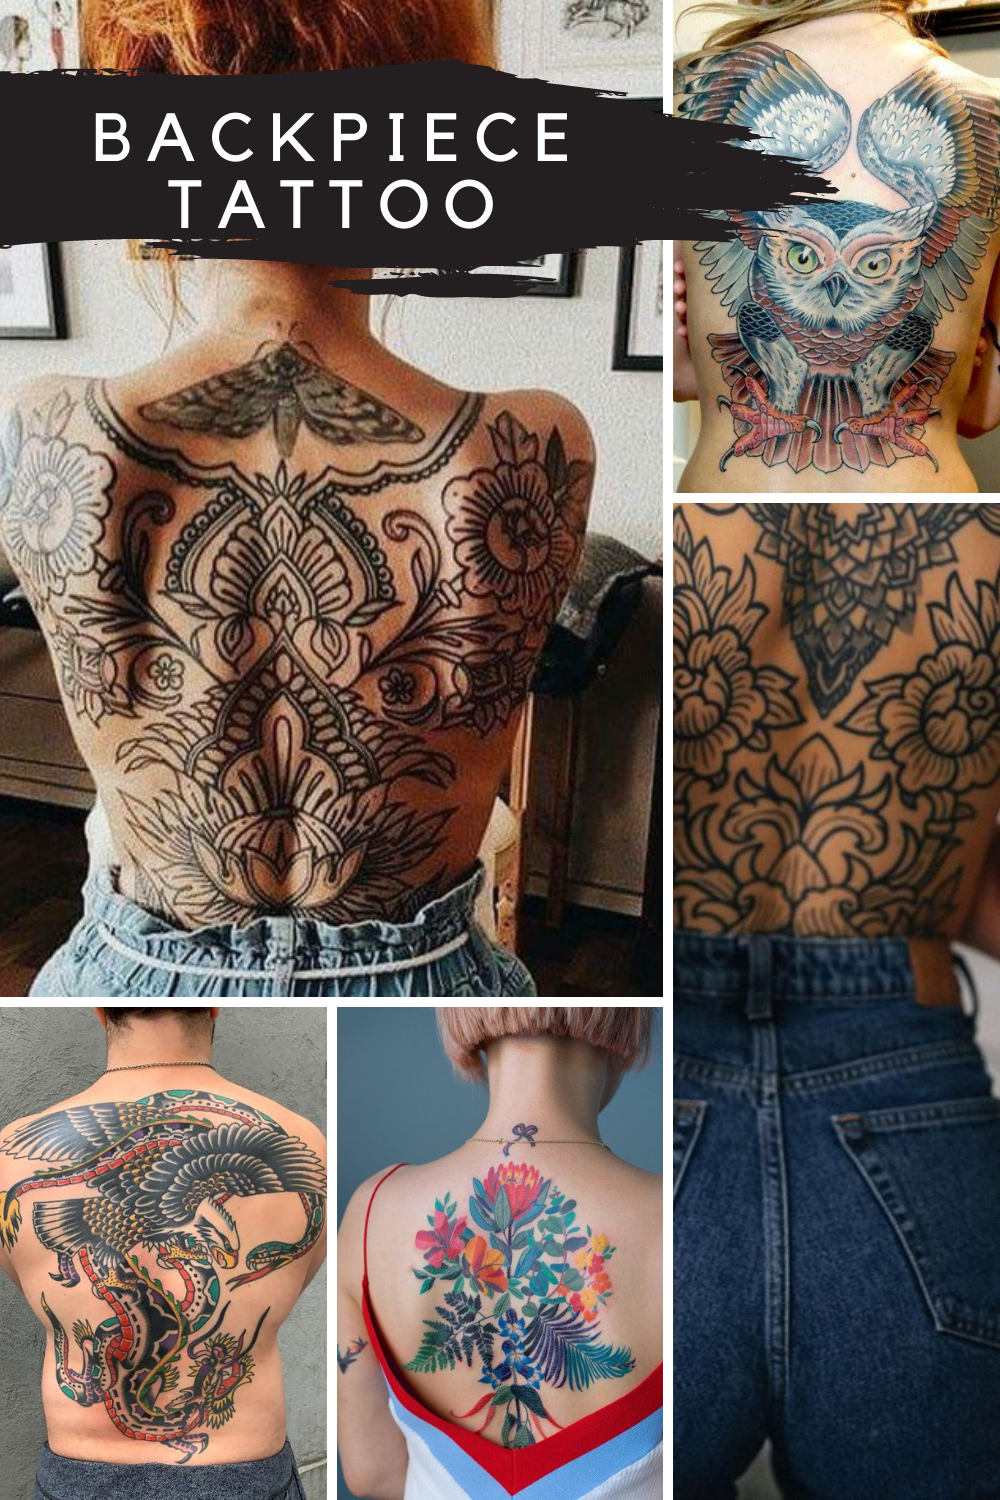 Backpiece Tattoo Ideas and designs